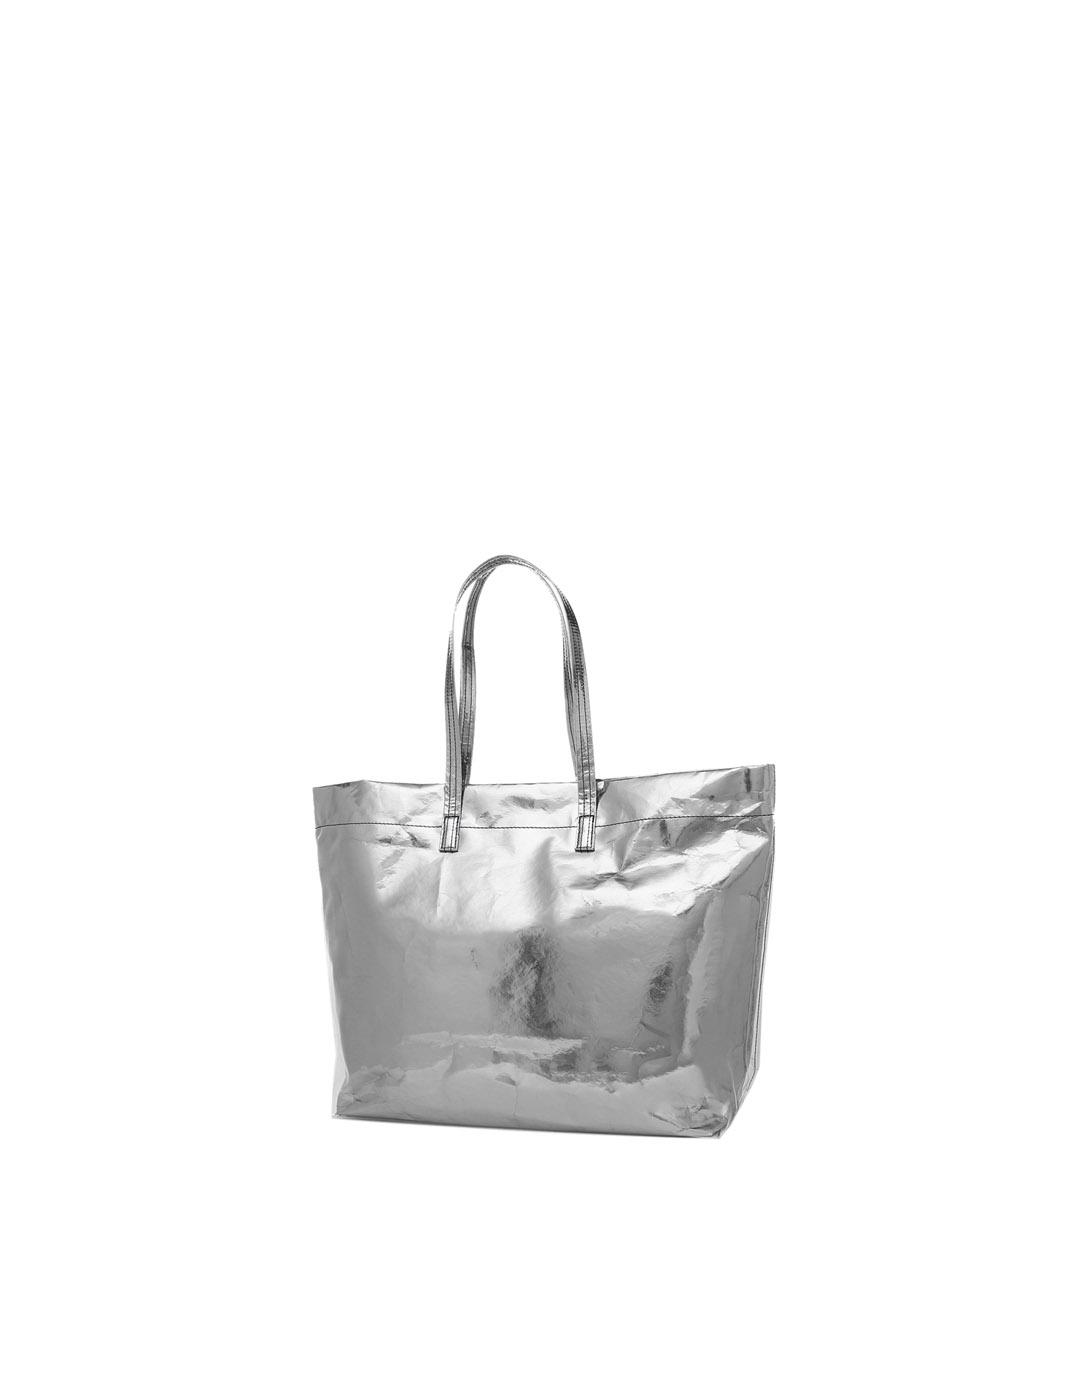 Bolso Marc Jacobs plateado The foil tote